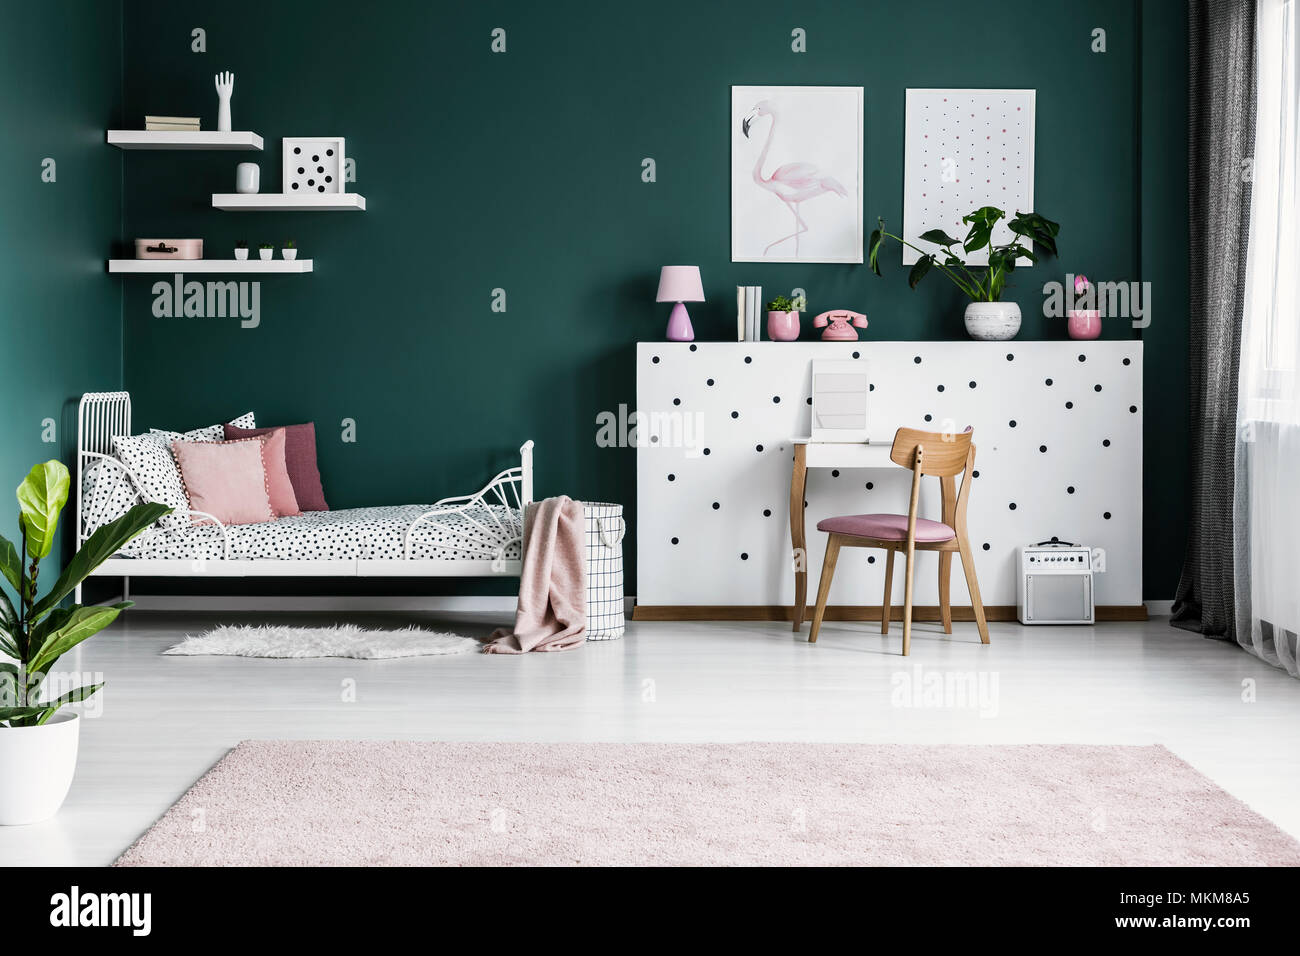 designer fashion fa197 7aa98 Posters on green wall in girl's bedroom interior with white ...